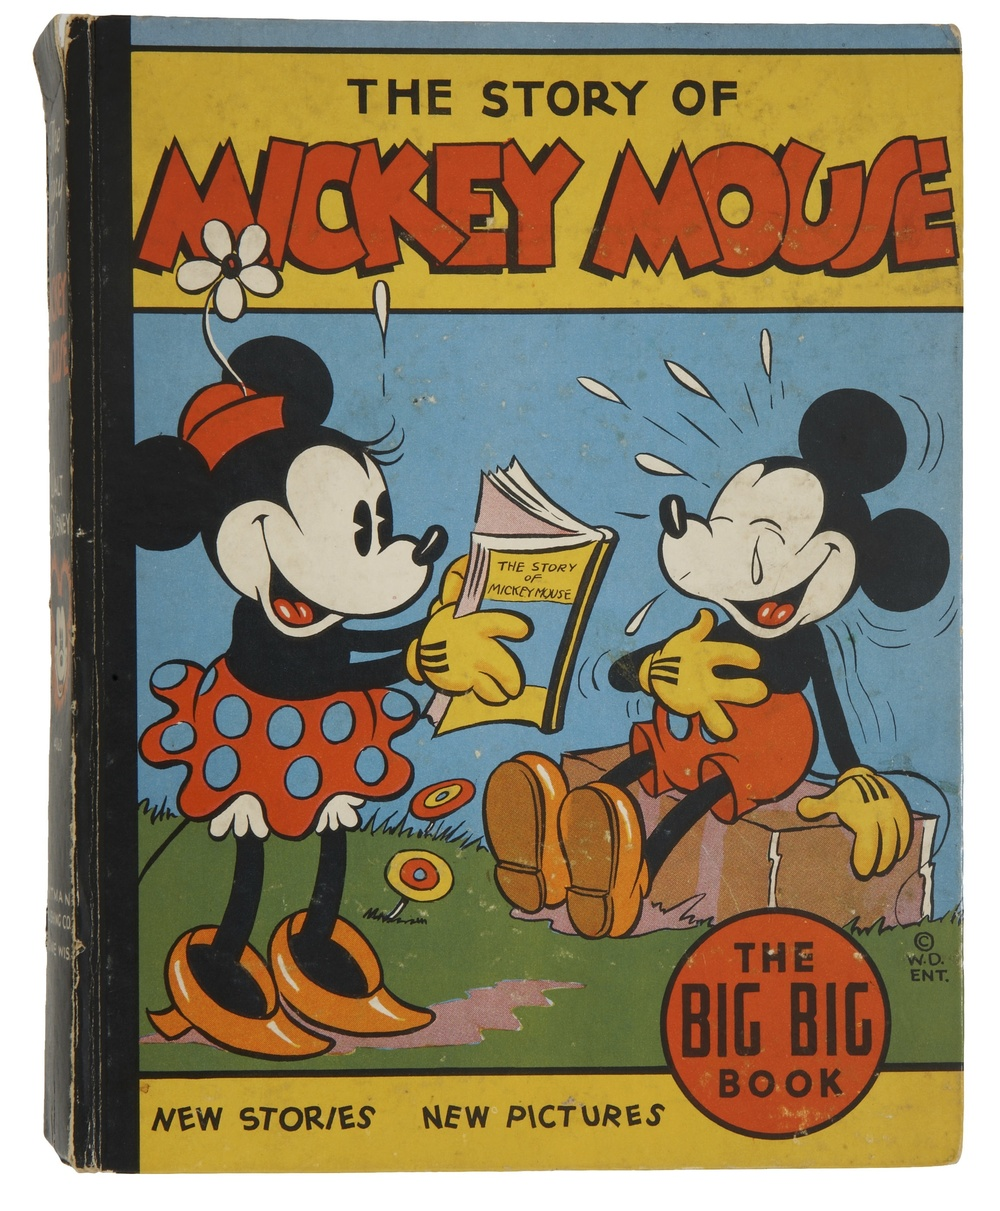 Walt Disney. The Story of Mickey Mouse and the Smugglers. Racine: Whitman Publishing, 1935. The Big Big Book. 316 pages.